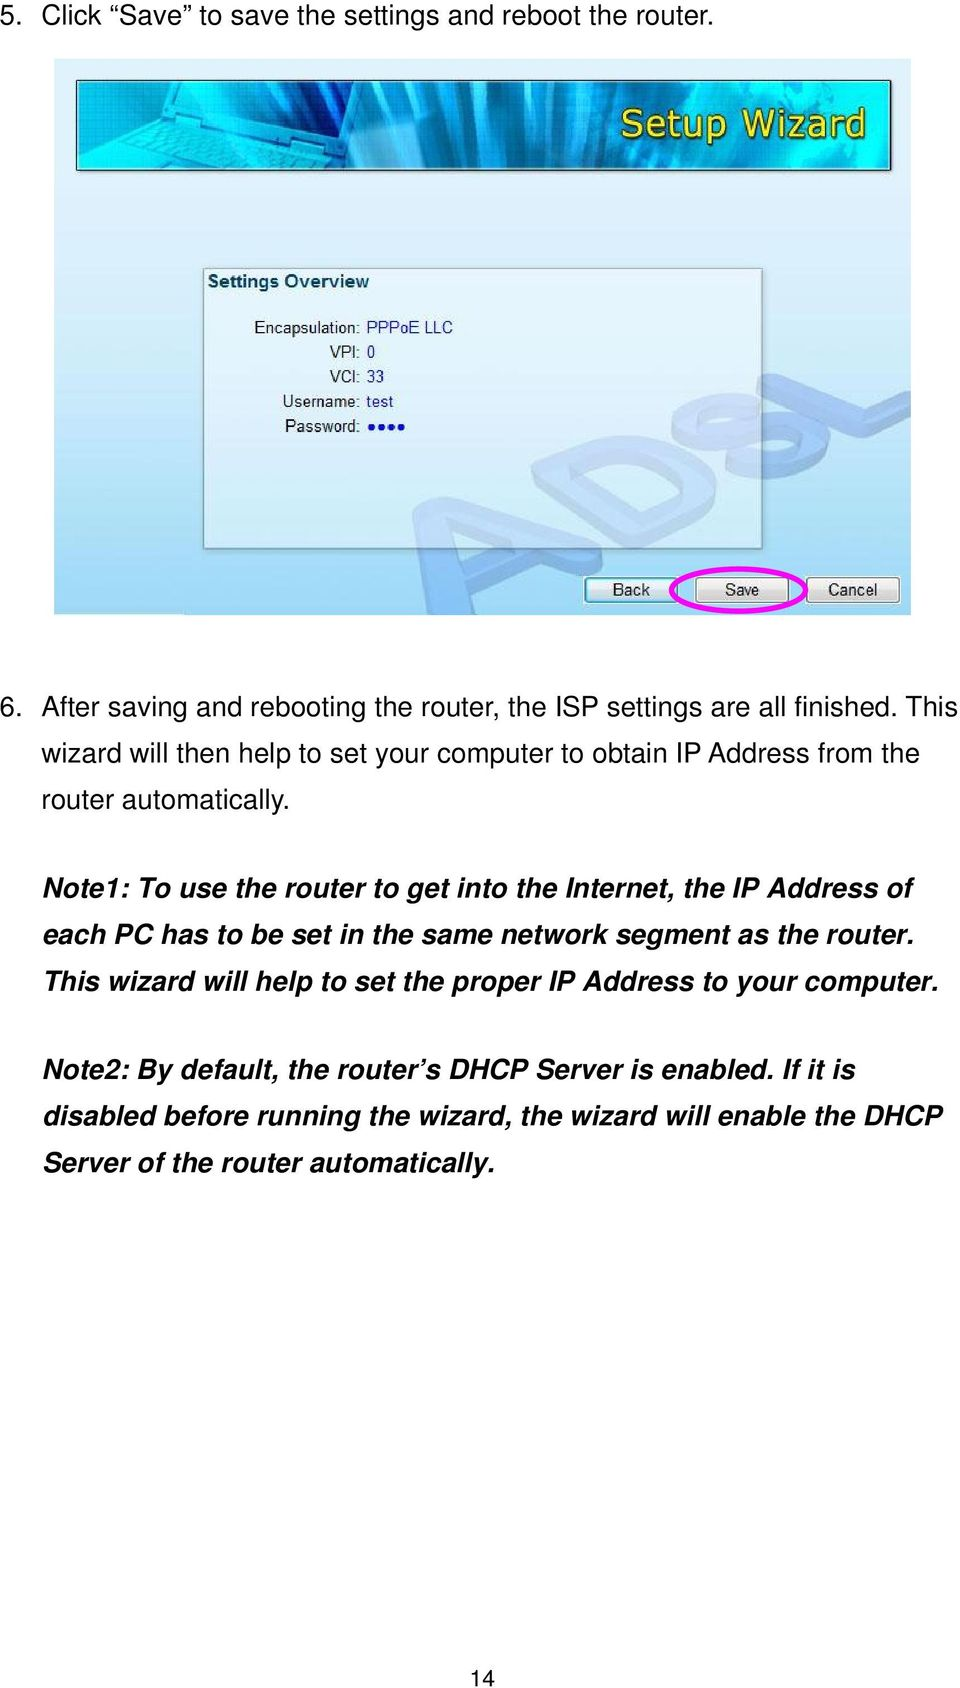 Note1: To use the router to get into the Internet, the IP Address of each PC has to be set in the same network segment as the router.